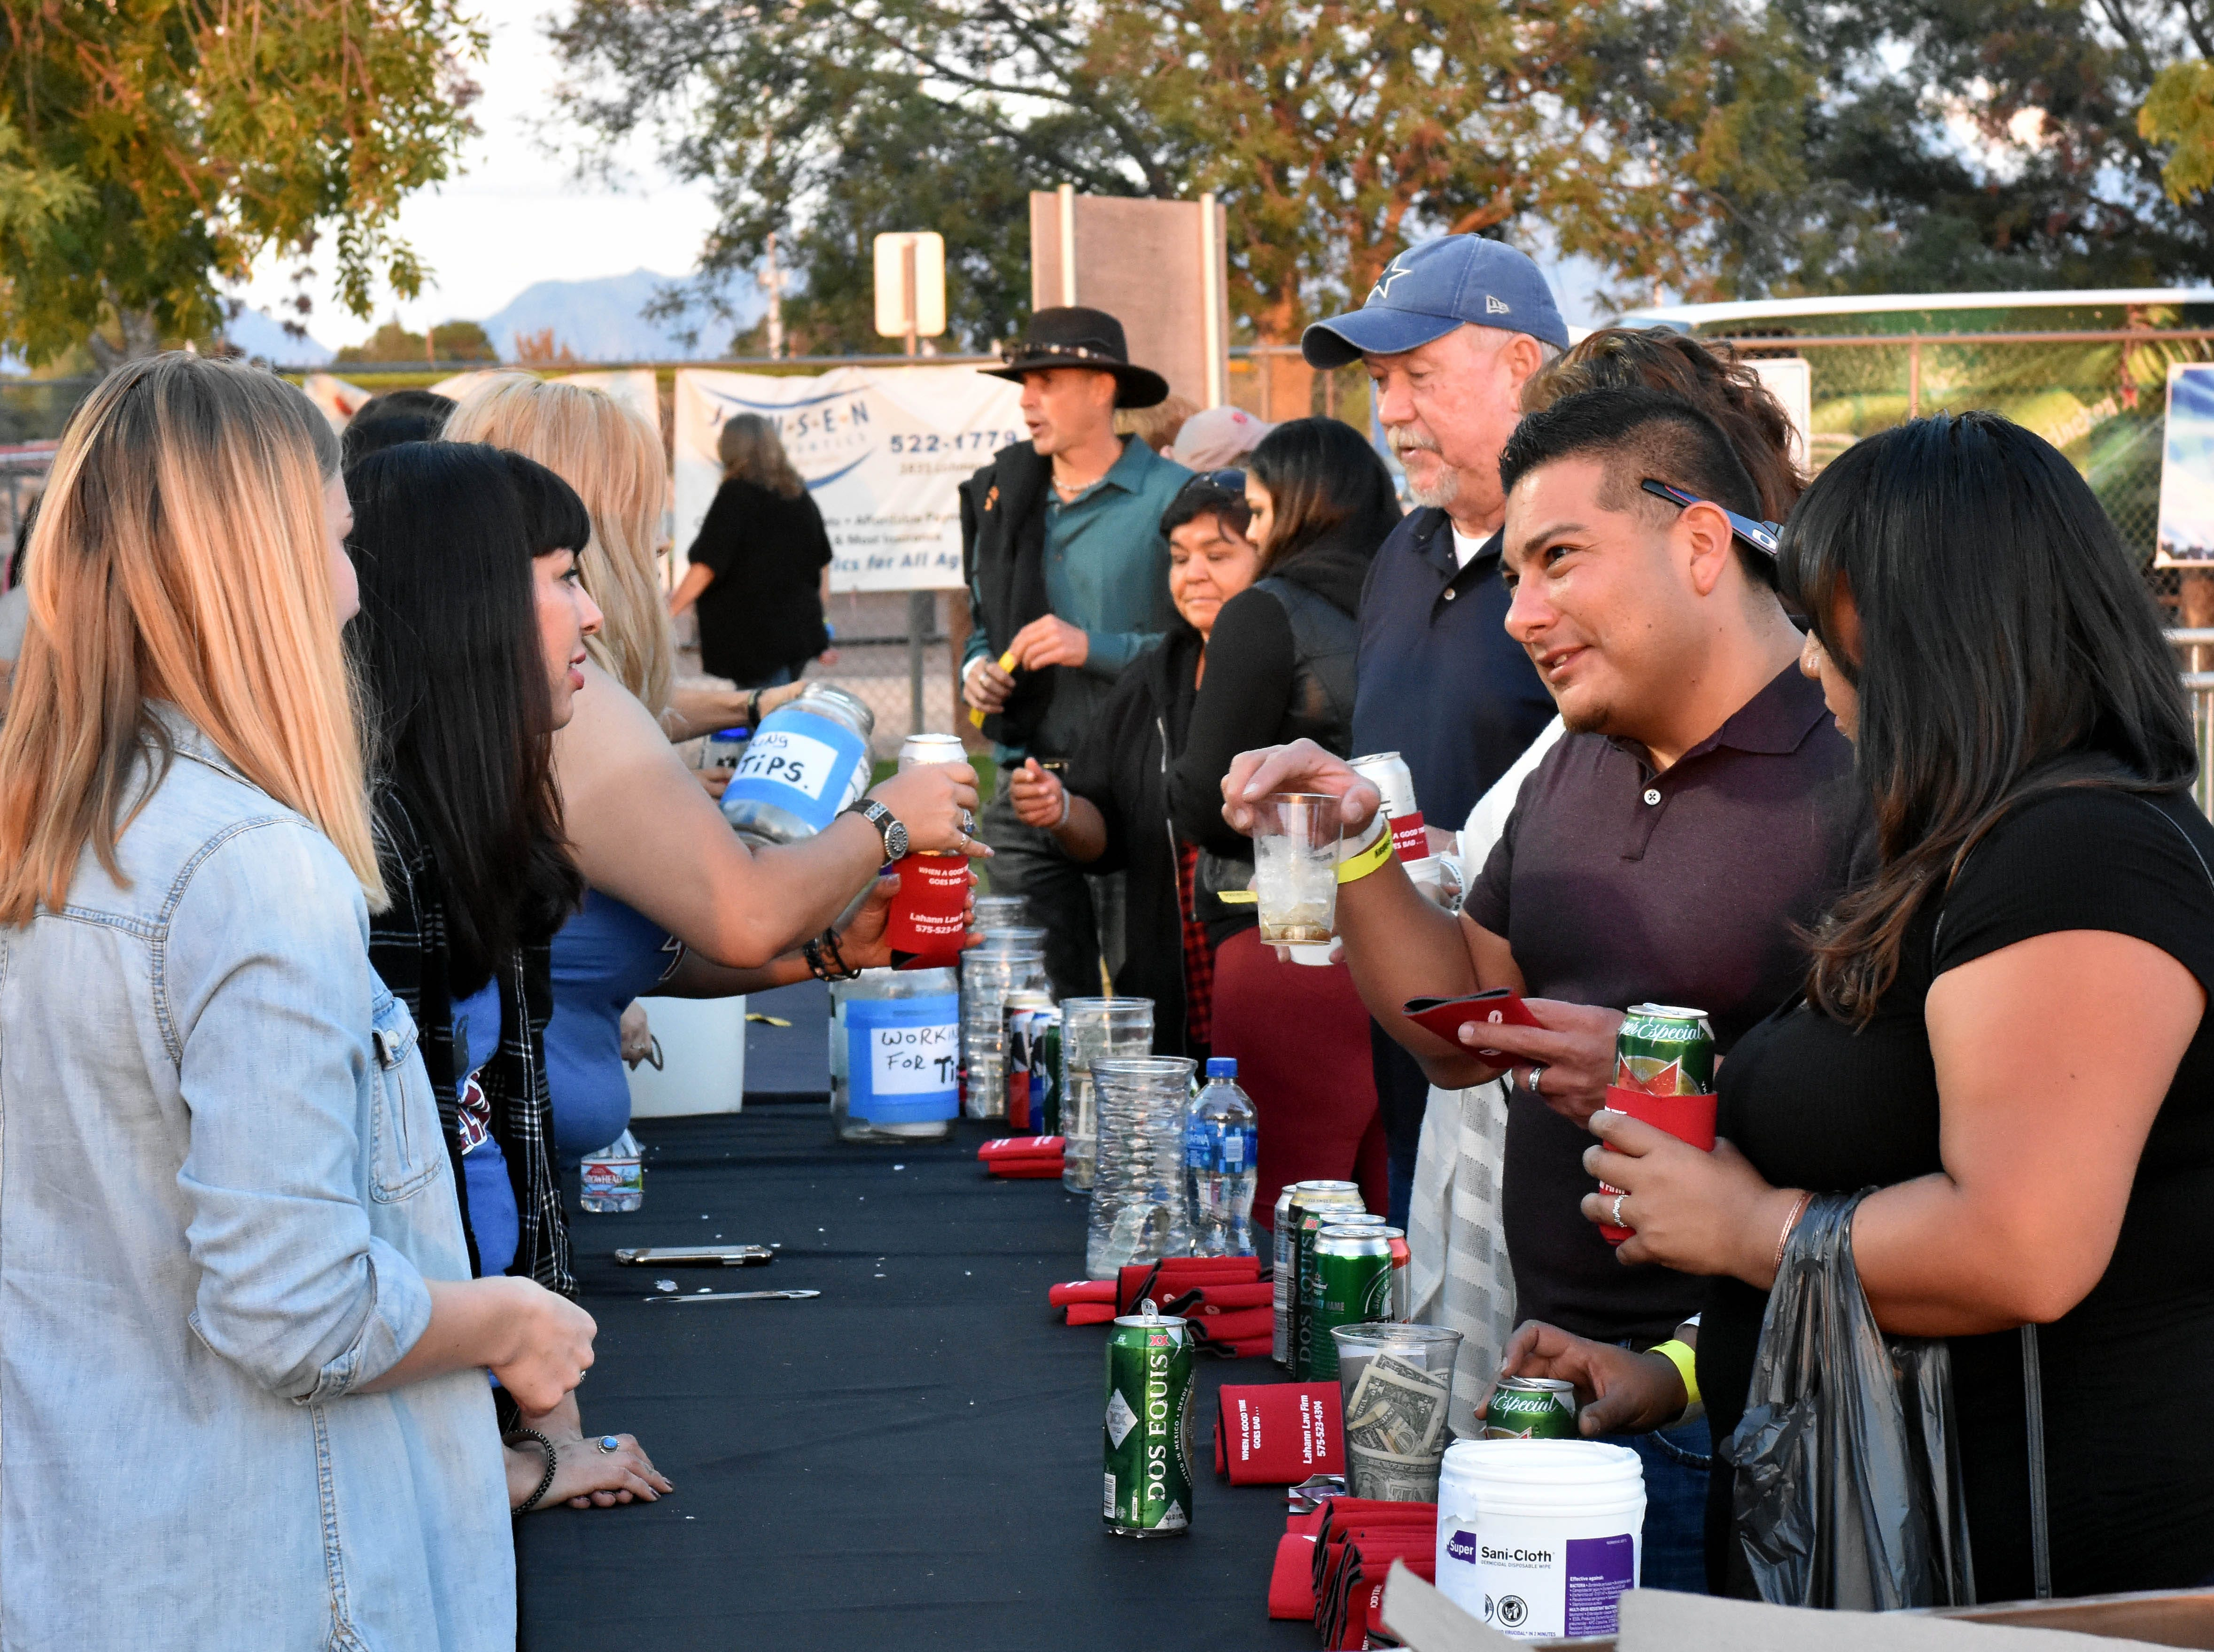 Lines start to form at the beverage area between acts at the Las Cruces Country Music Festival on Friday, Oct. 19, 2018.